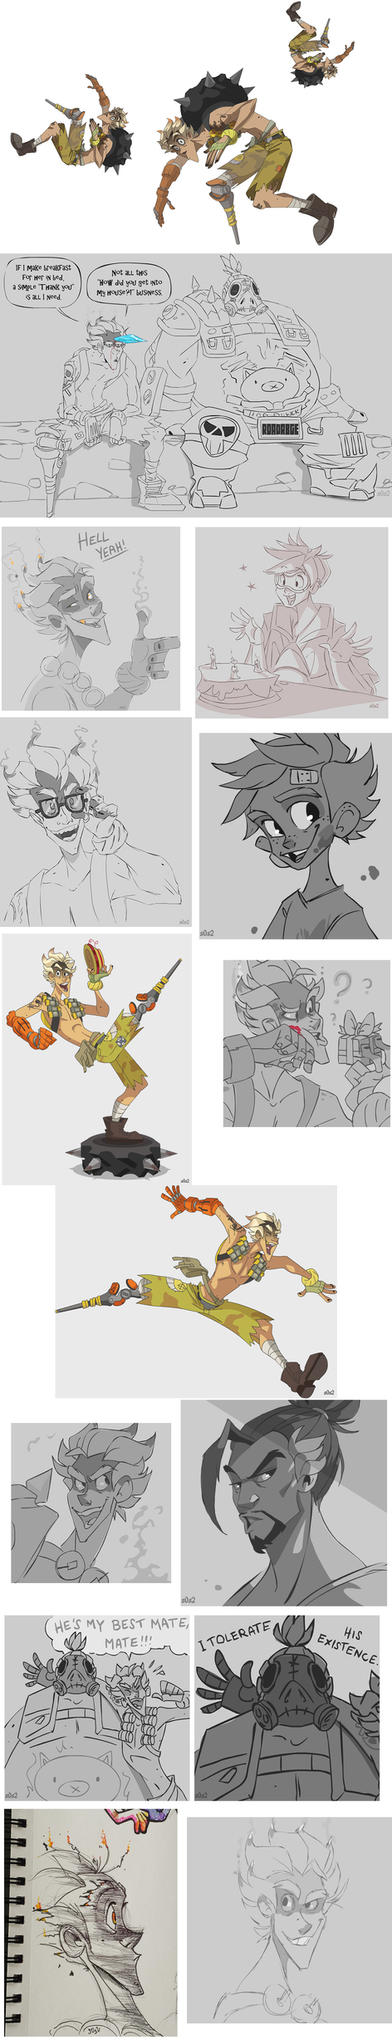 Old Tumblr Junkrat/Overwatch stuff by s0s2